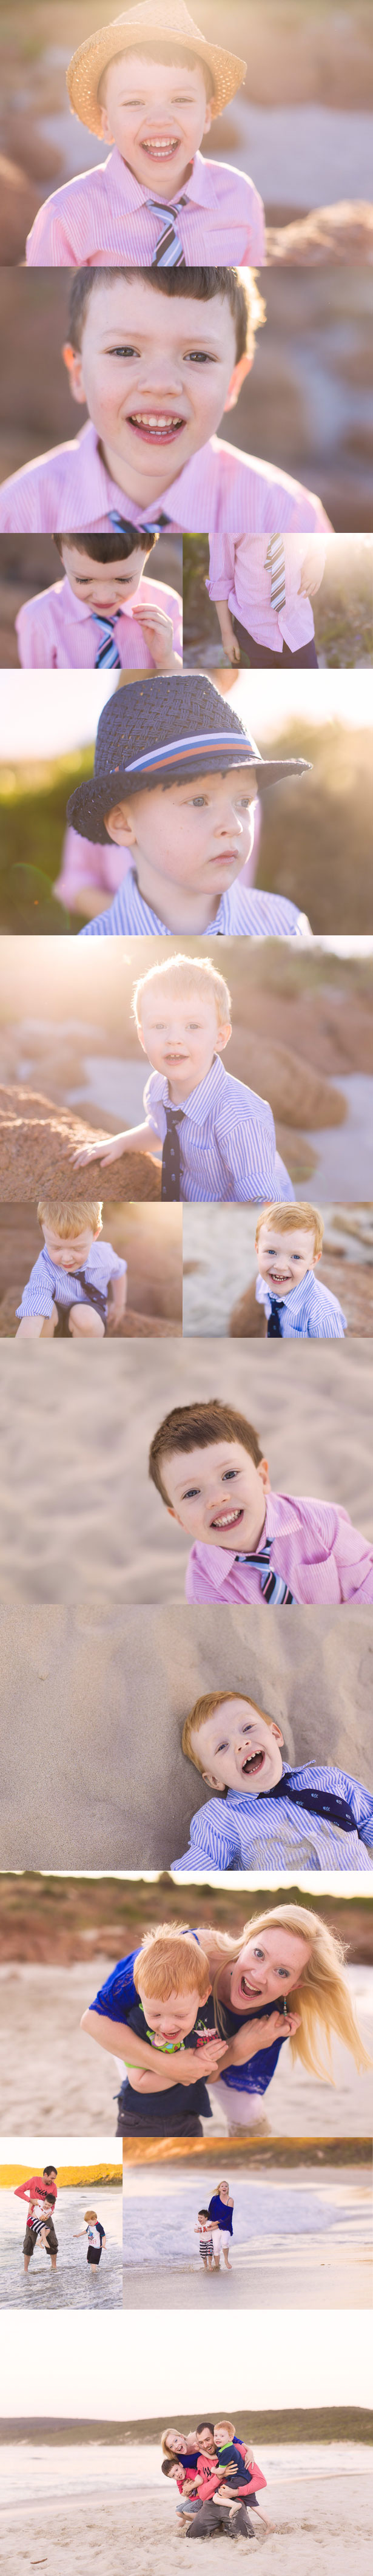 Butterbomb Family photography Smiths Beach